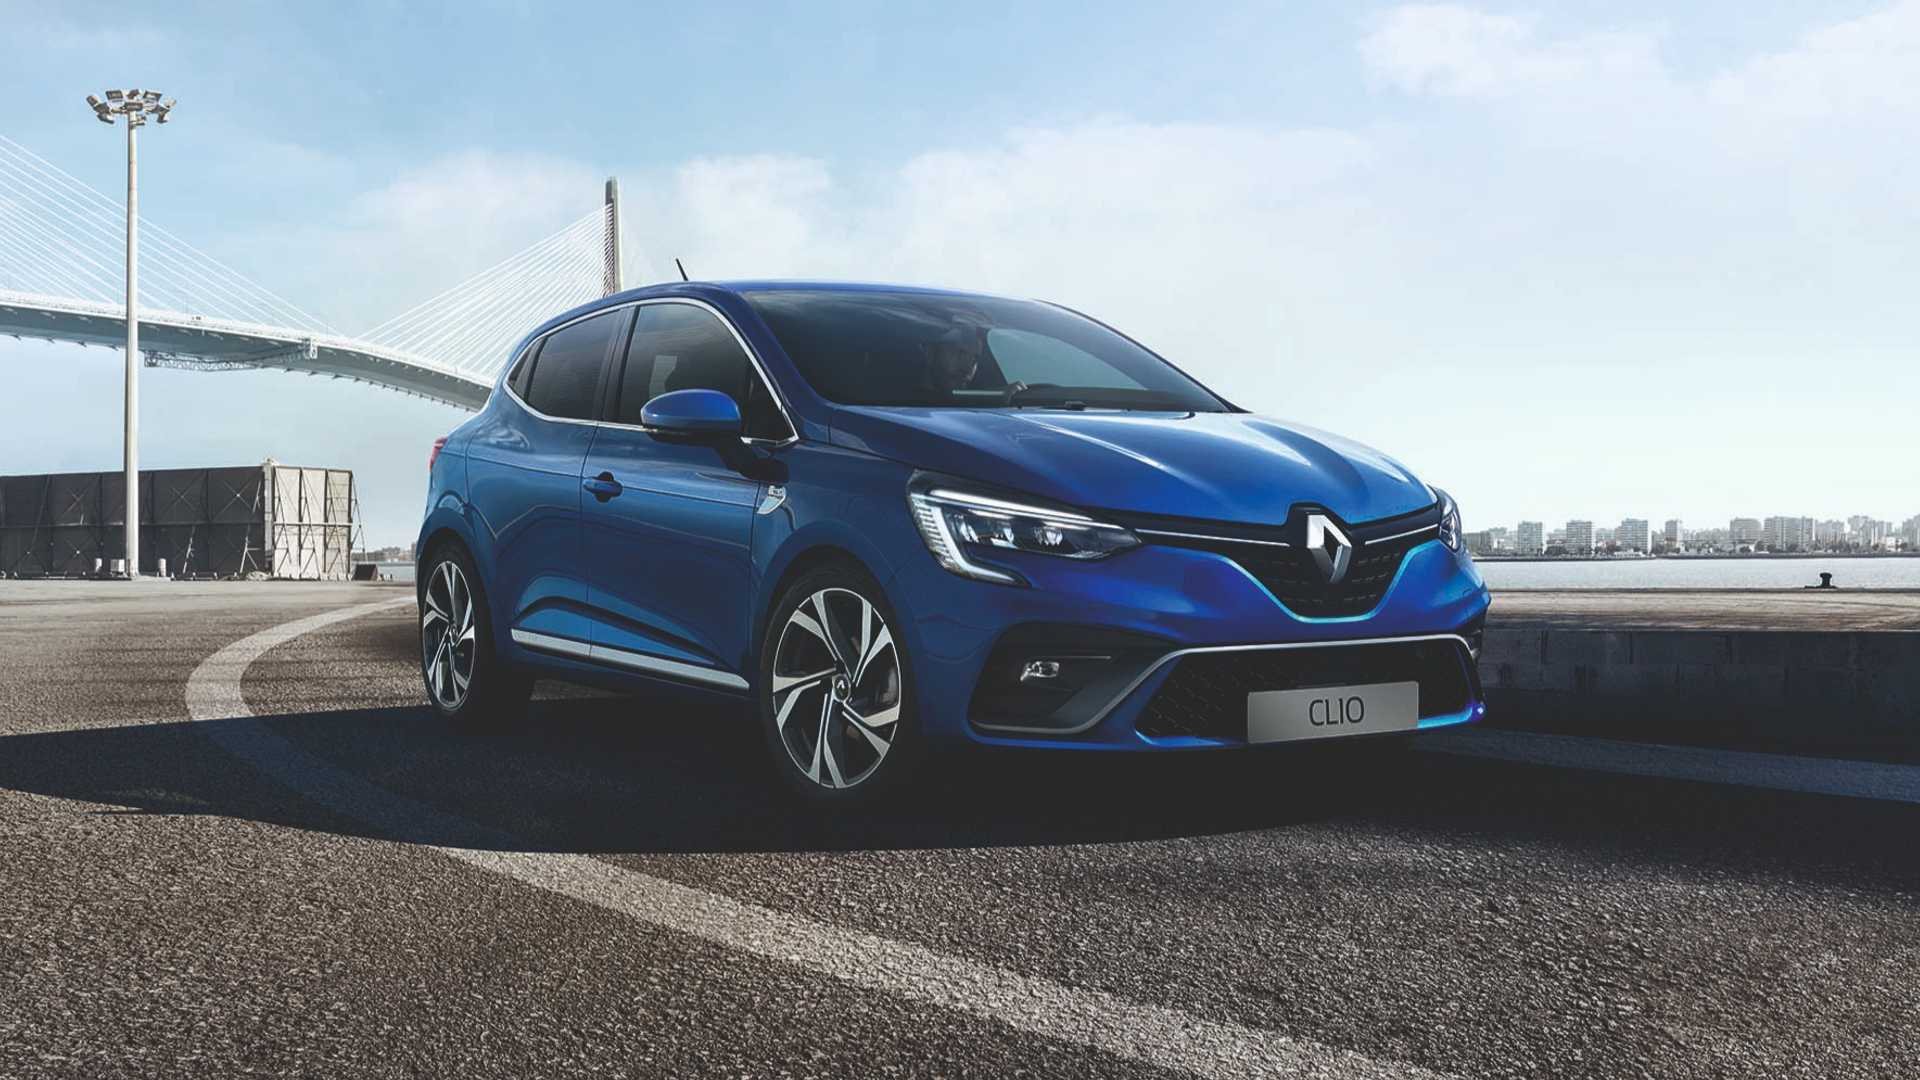 2019 renault clio officially unveiled redline. Black Bedroom Furniture Sets. Home Design Ideas